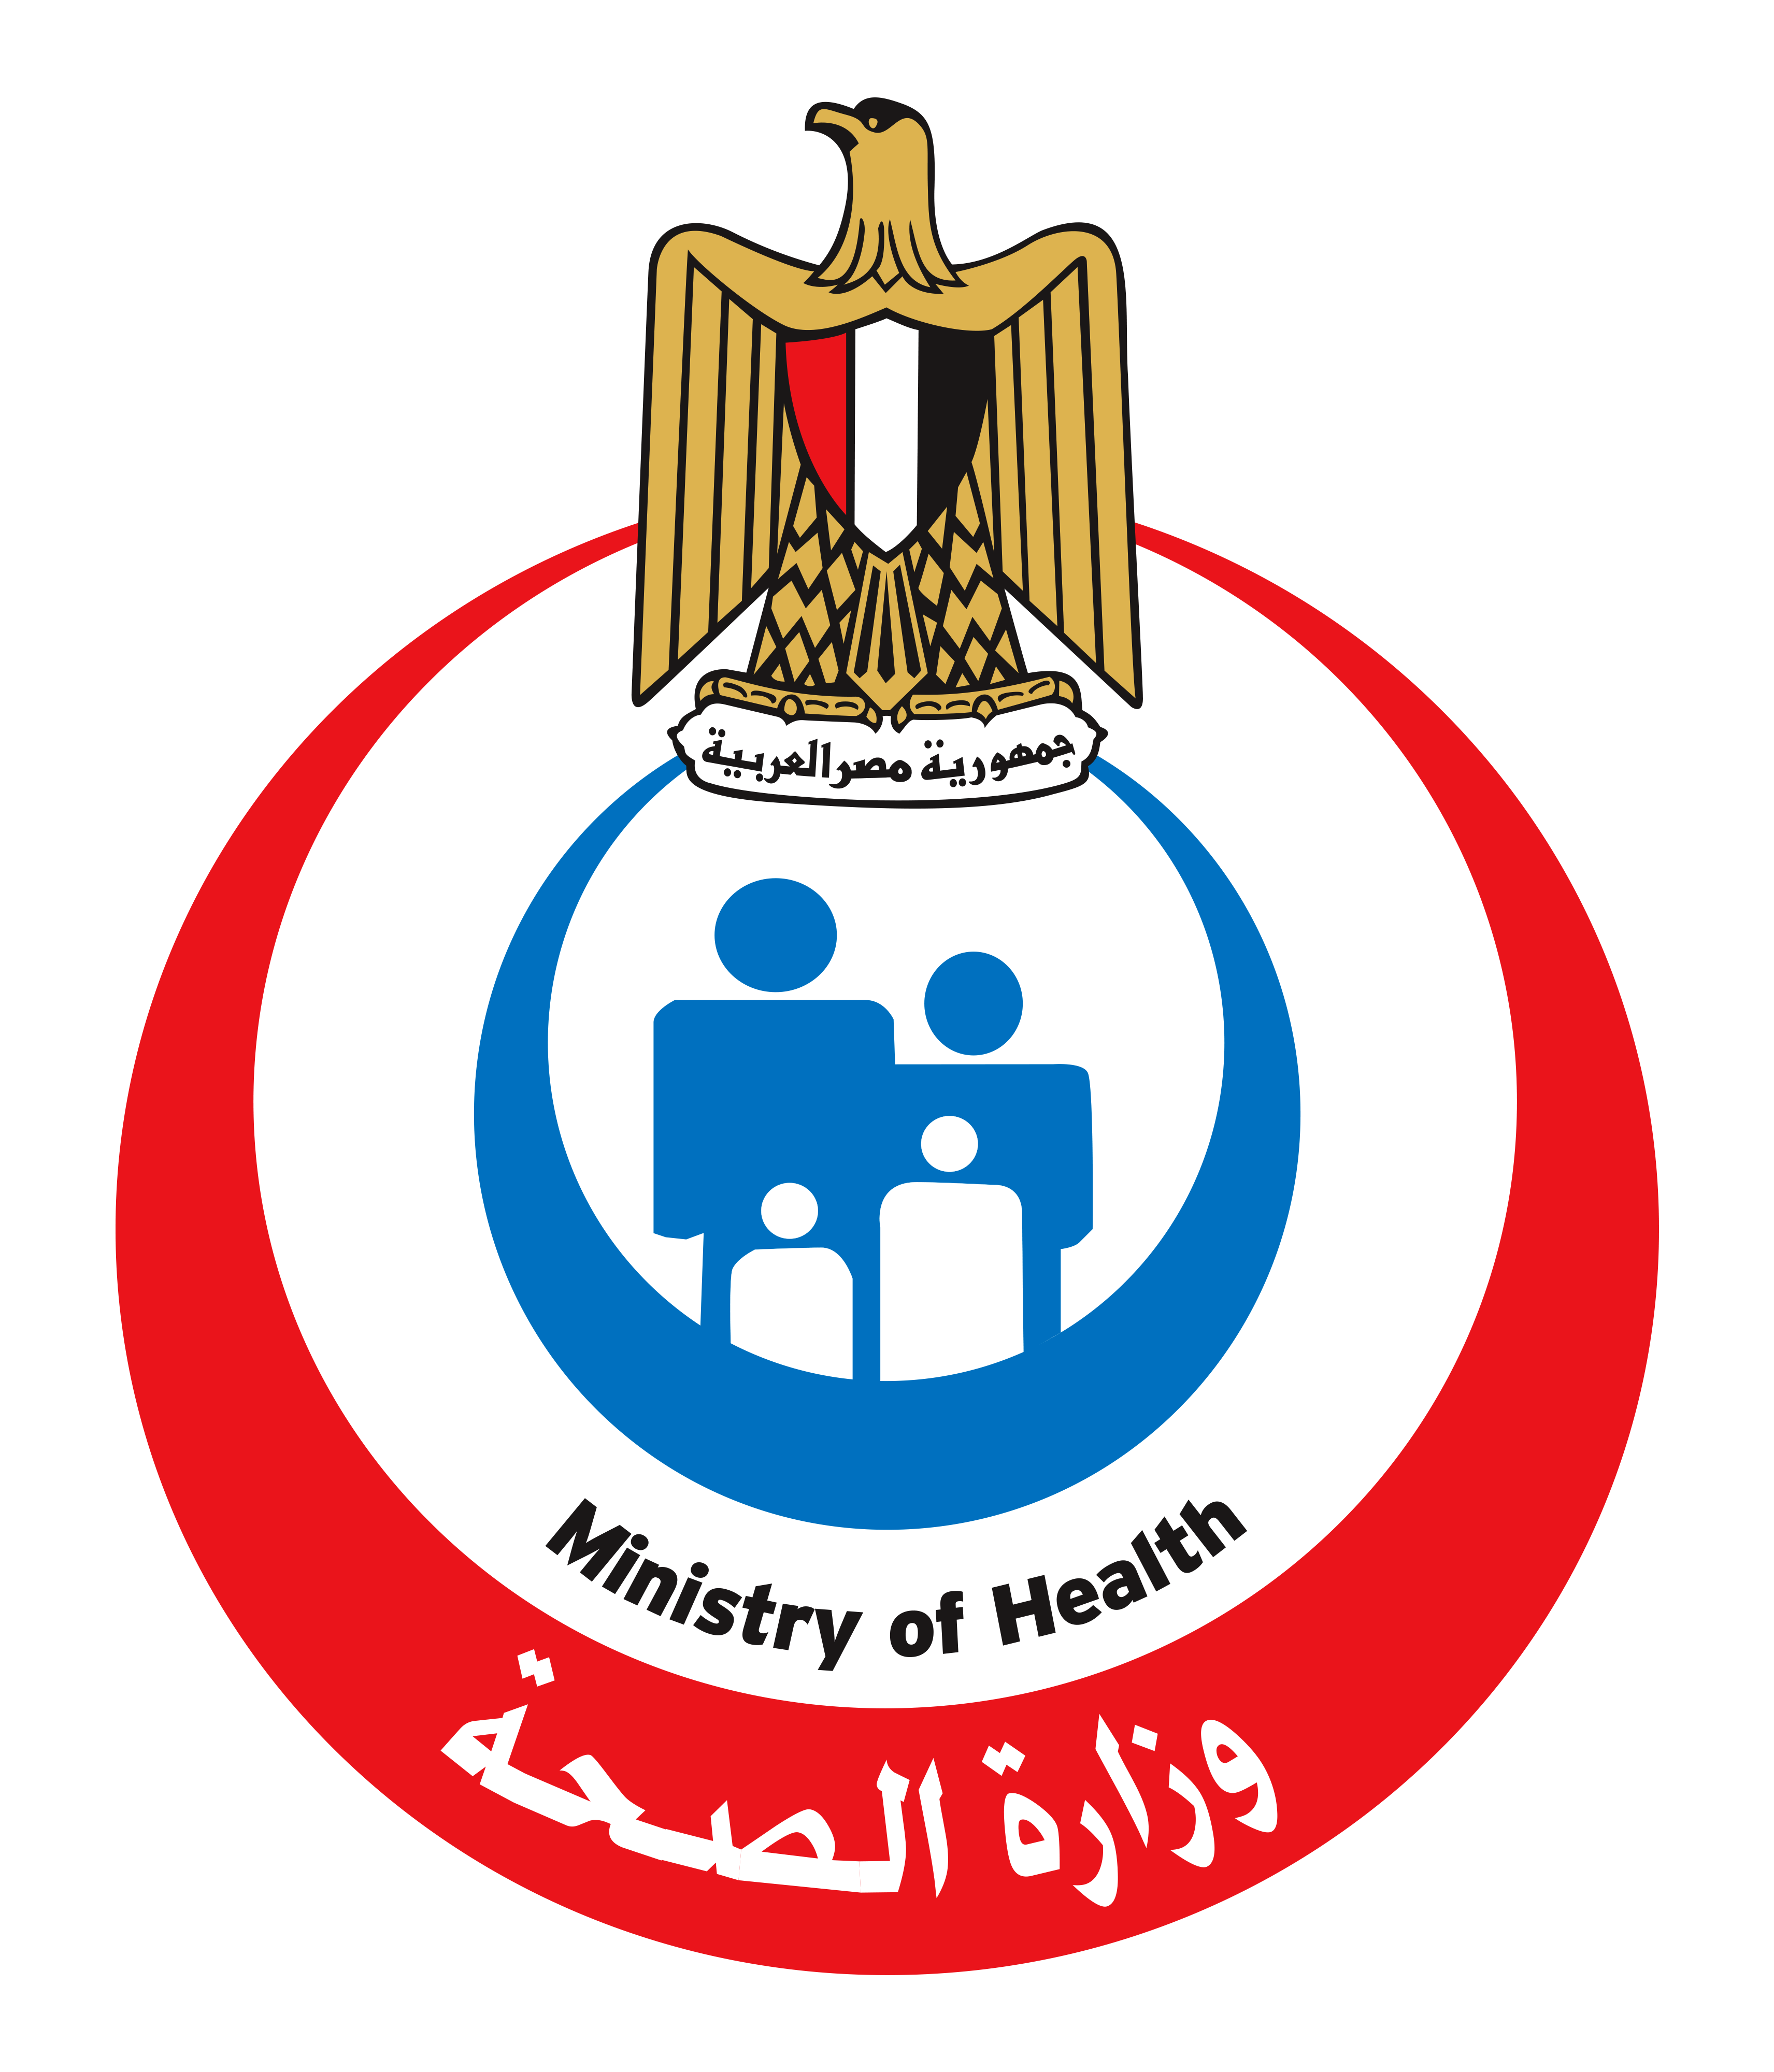 Logo-ministry-of-health-egypt---download-free-PNG